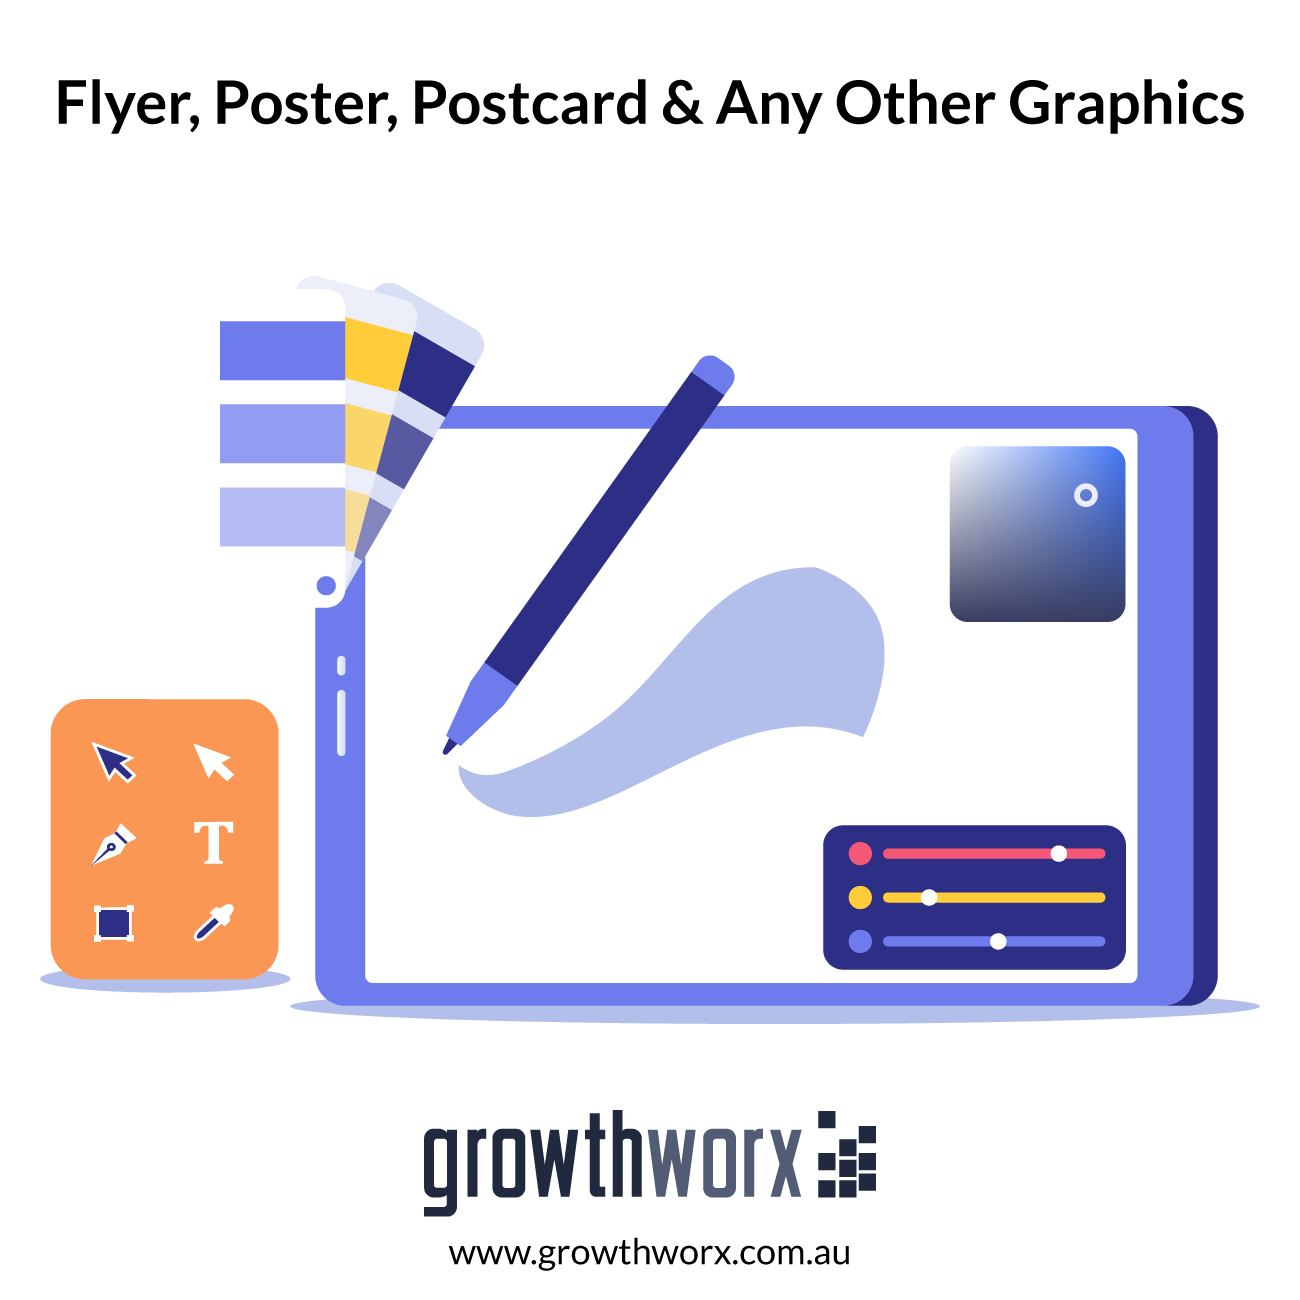 We will design flyer, poster, postcard or any other graphics 1